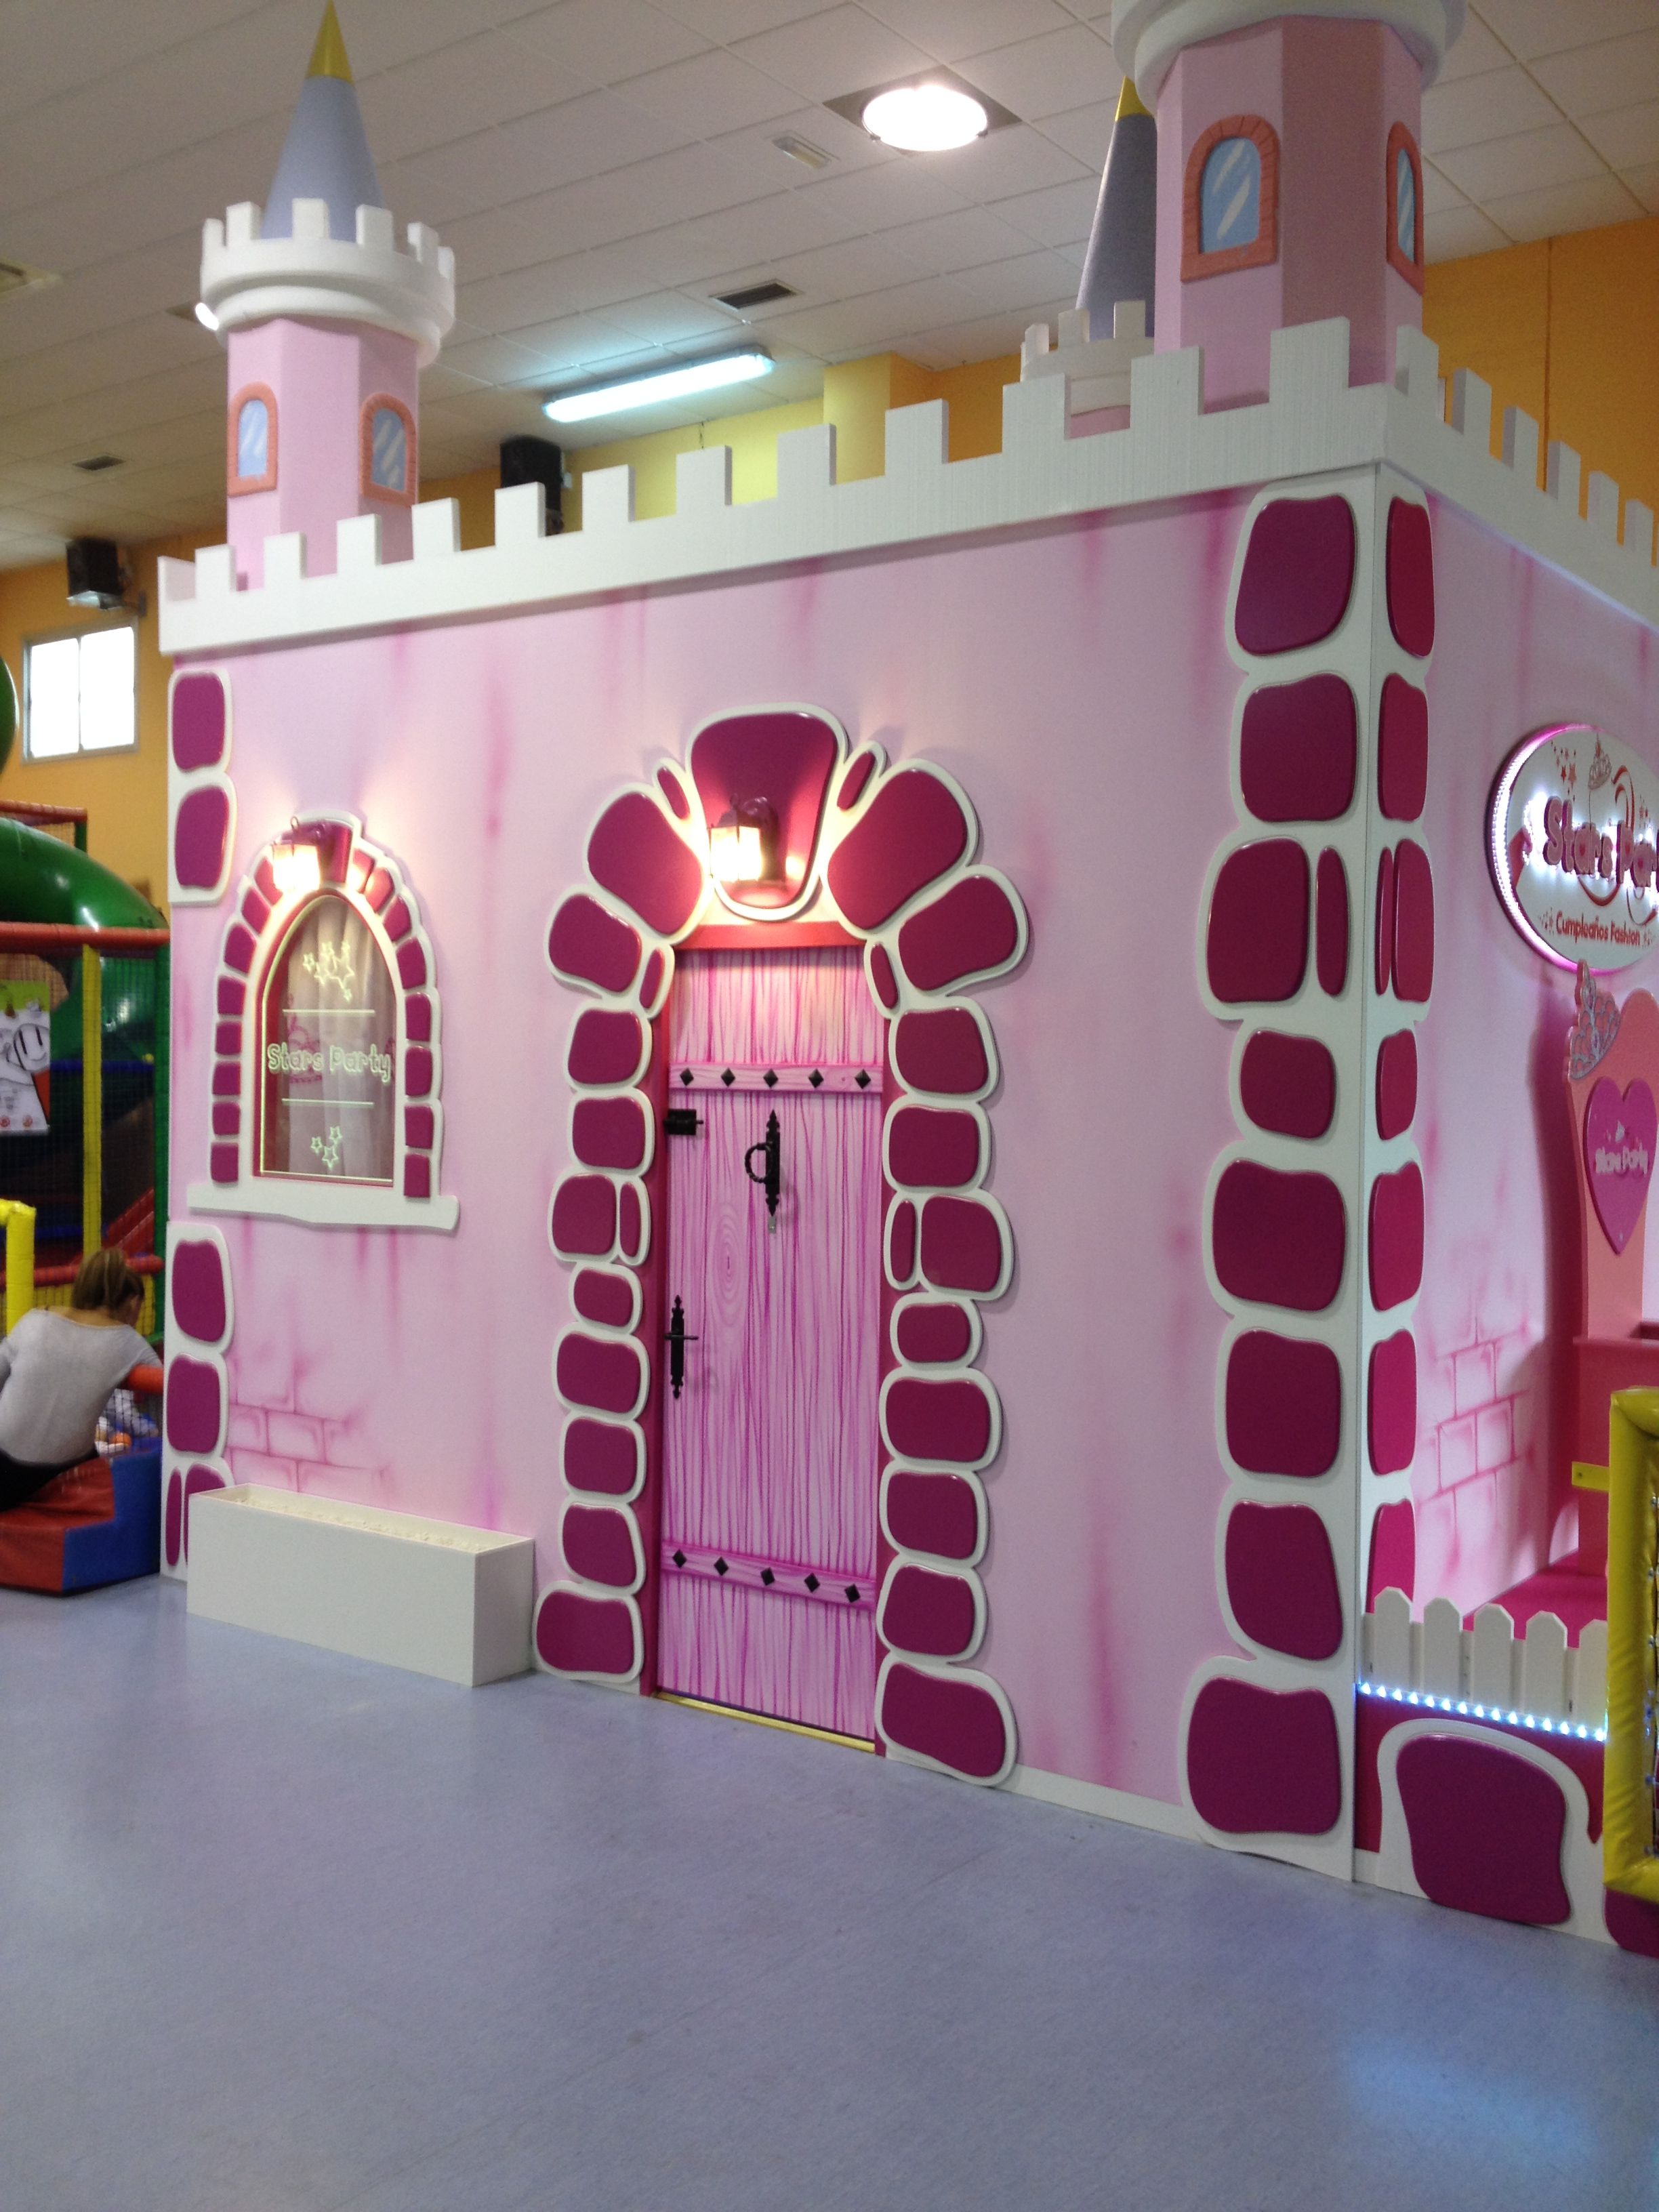 Castillo de princesas para ni as en el parque infantil for Decoracion hogares infantiles